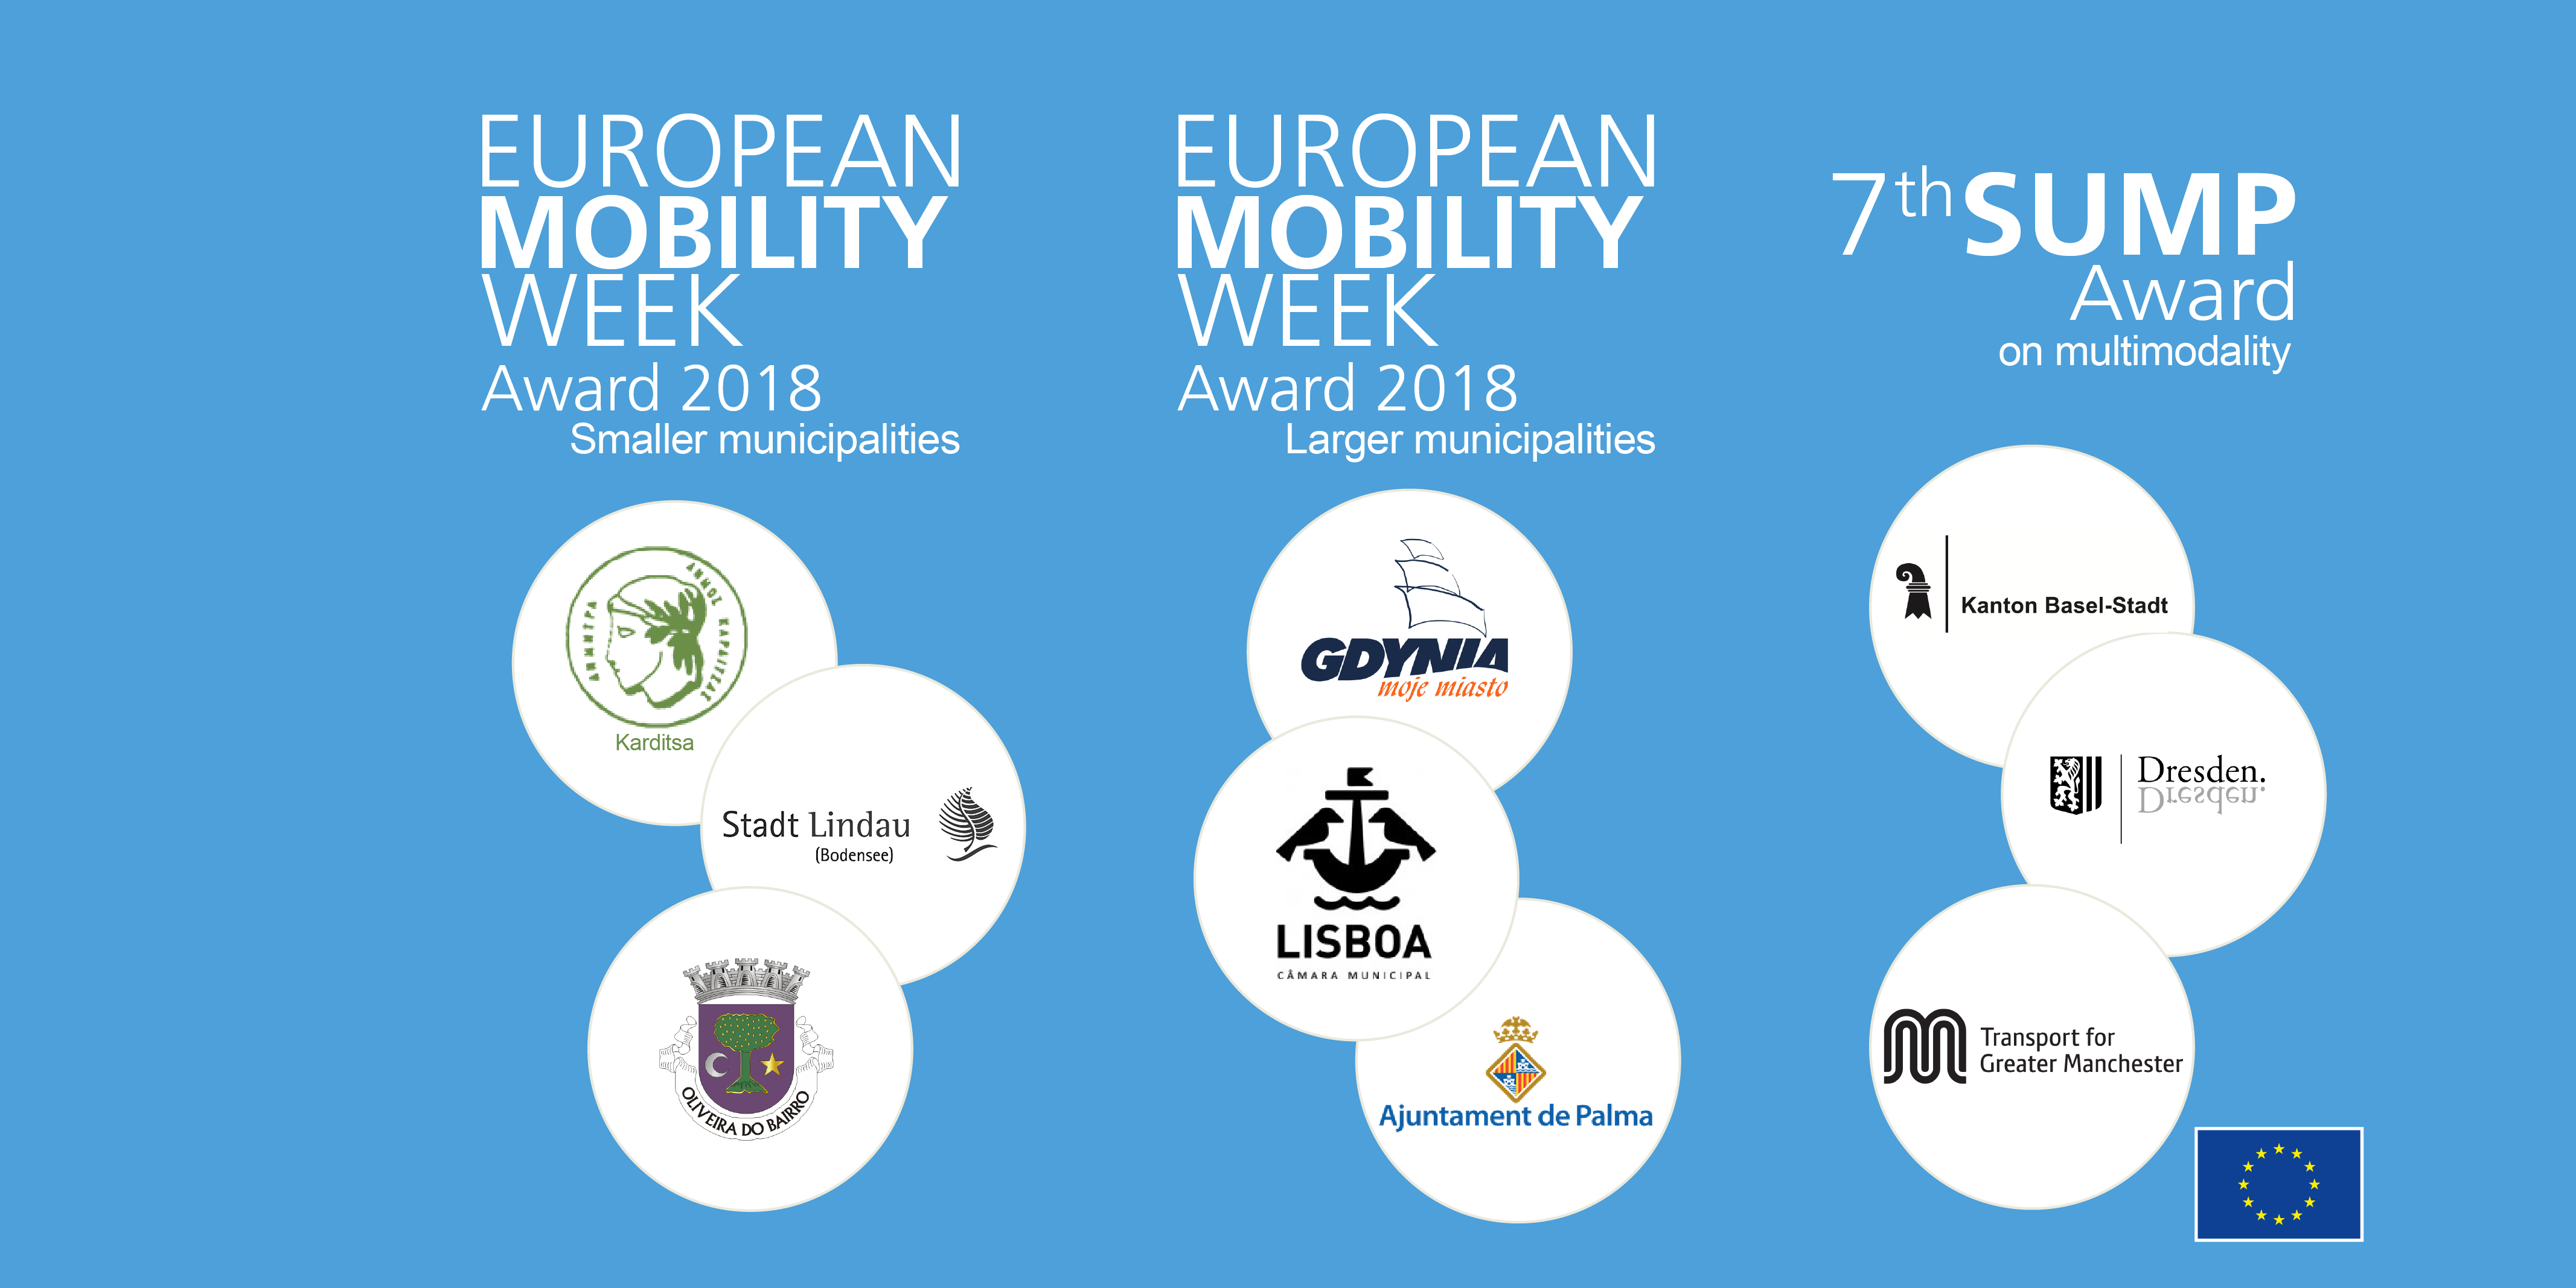 Lisbon, Lindau and Greater Manchester win EU sustainable mobility awards